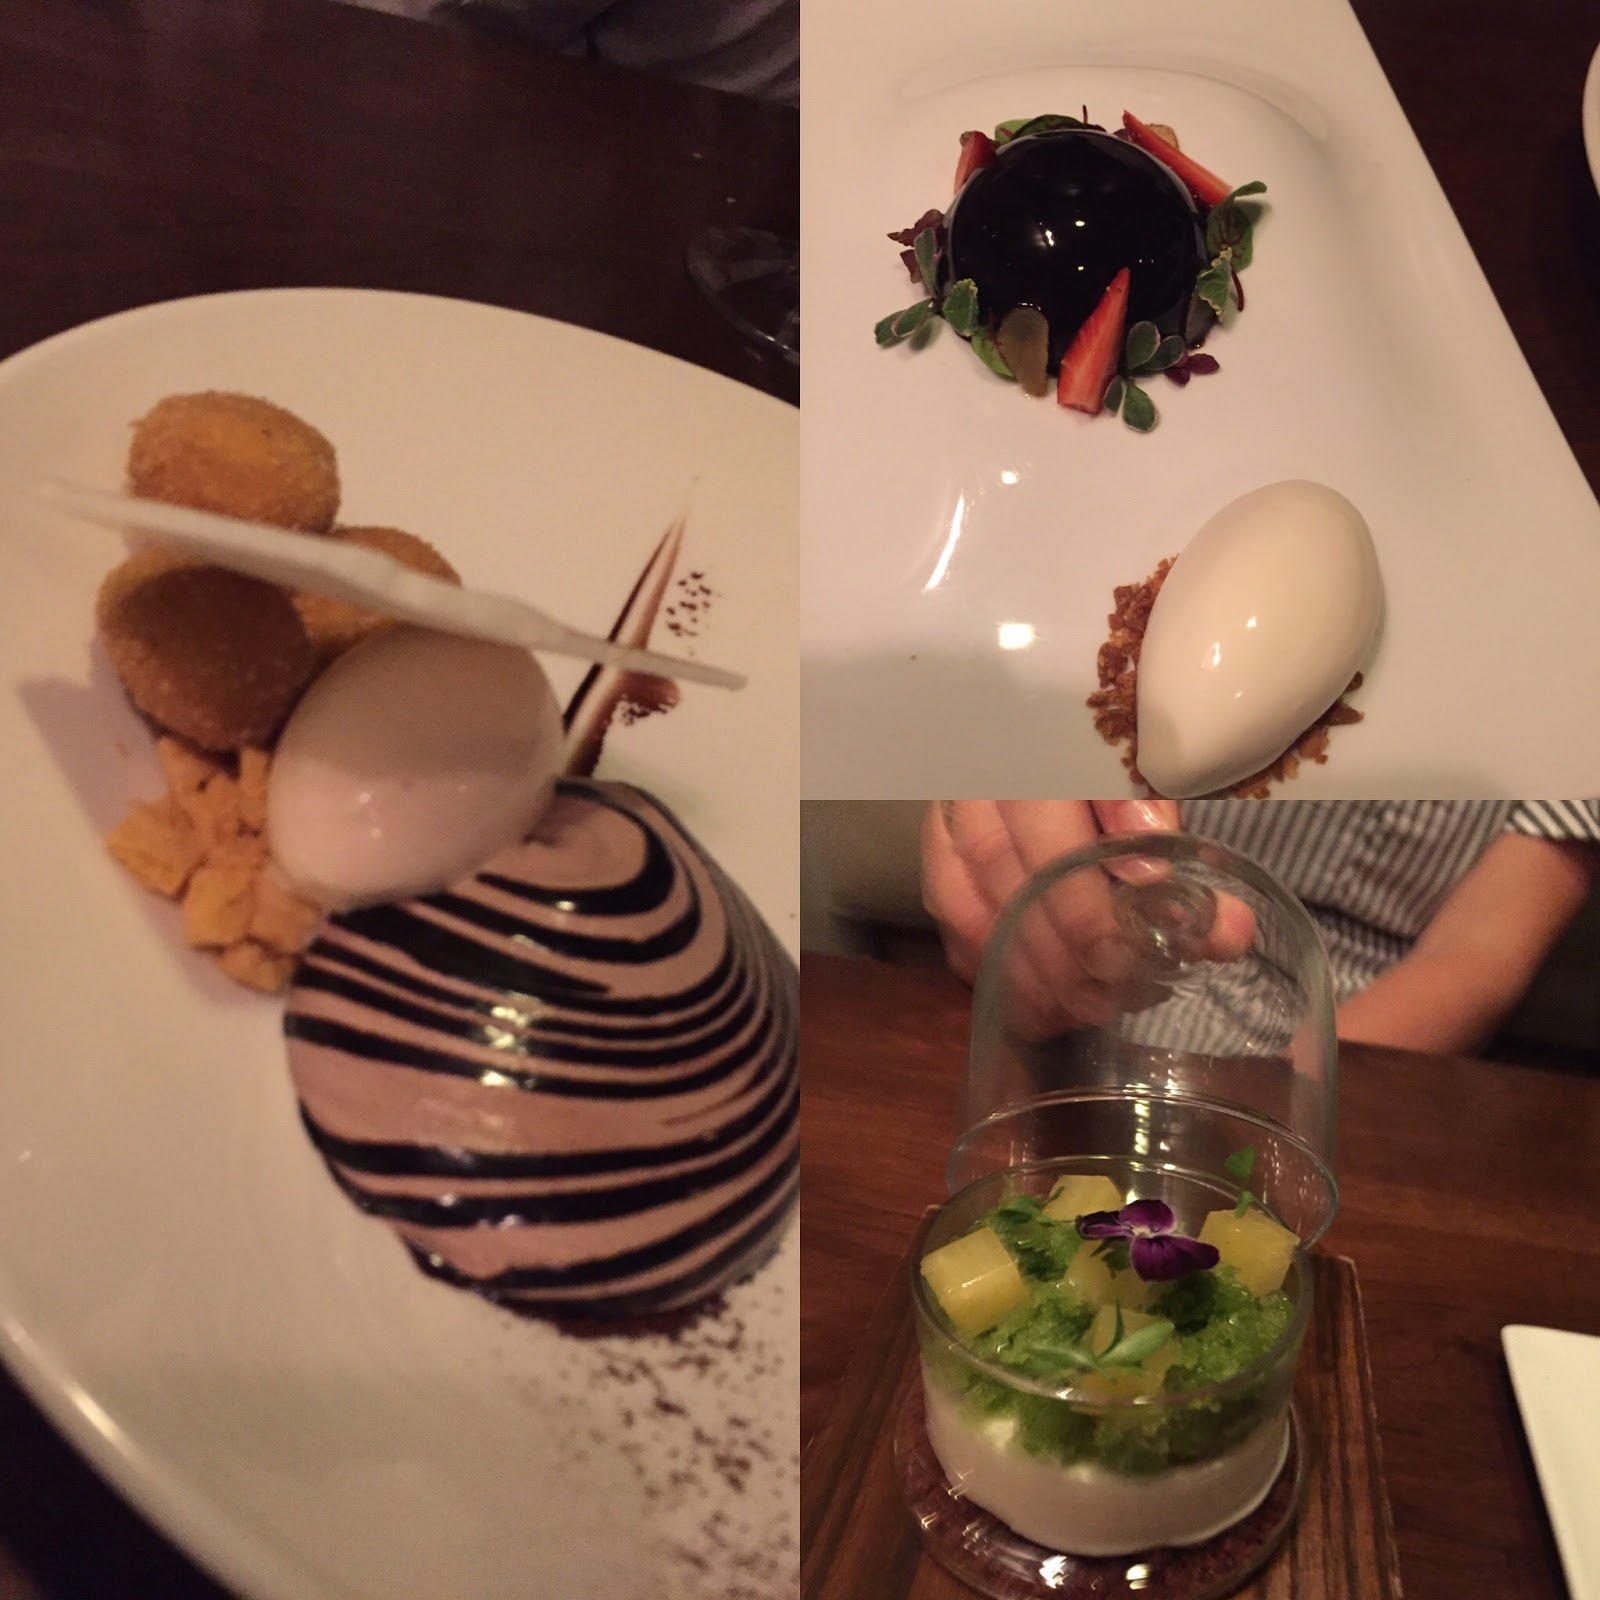 That Restaurant Was Uchiko And It Fabulous One Of The Best Meals I Have Had In Awhile For Sure Love Small Plates Concept Because You Can Try